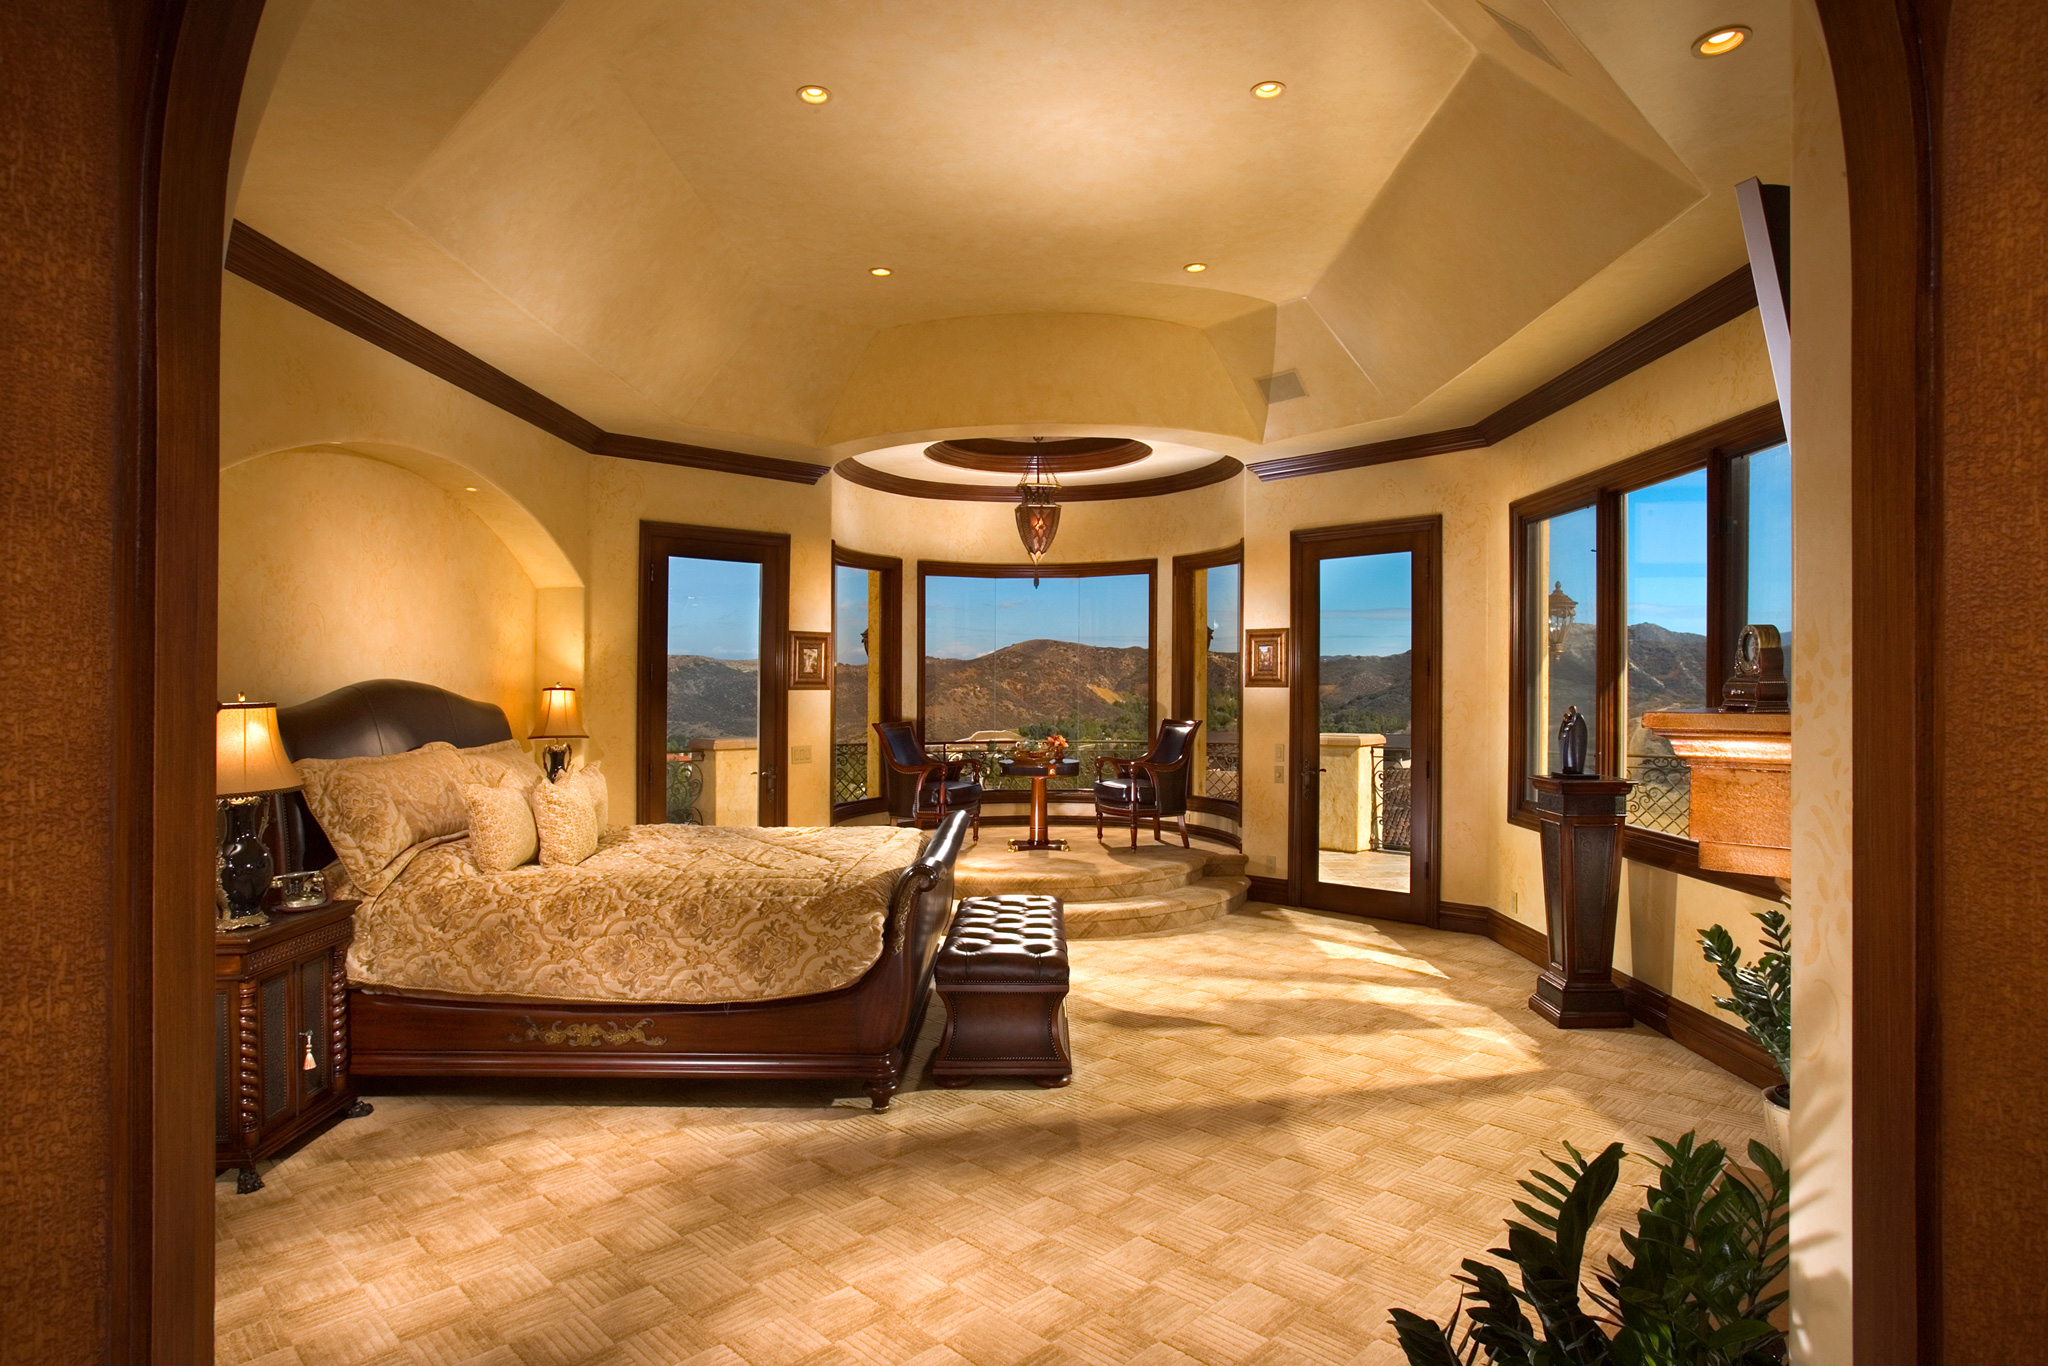 Master bedroom the interior designs for Front room design ideas